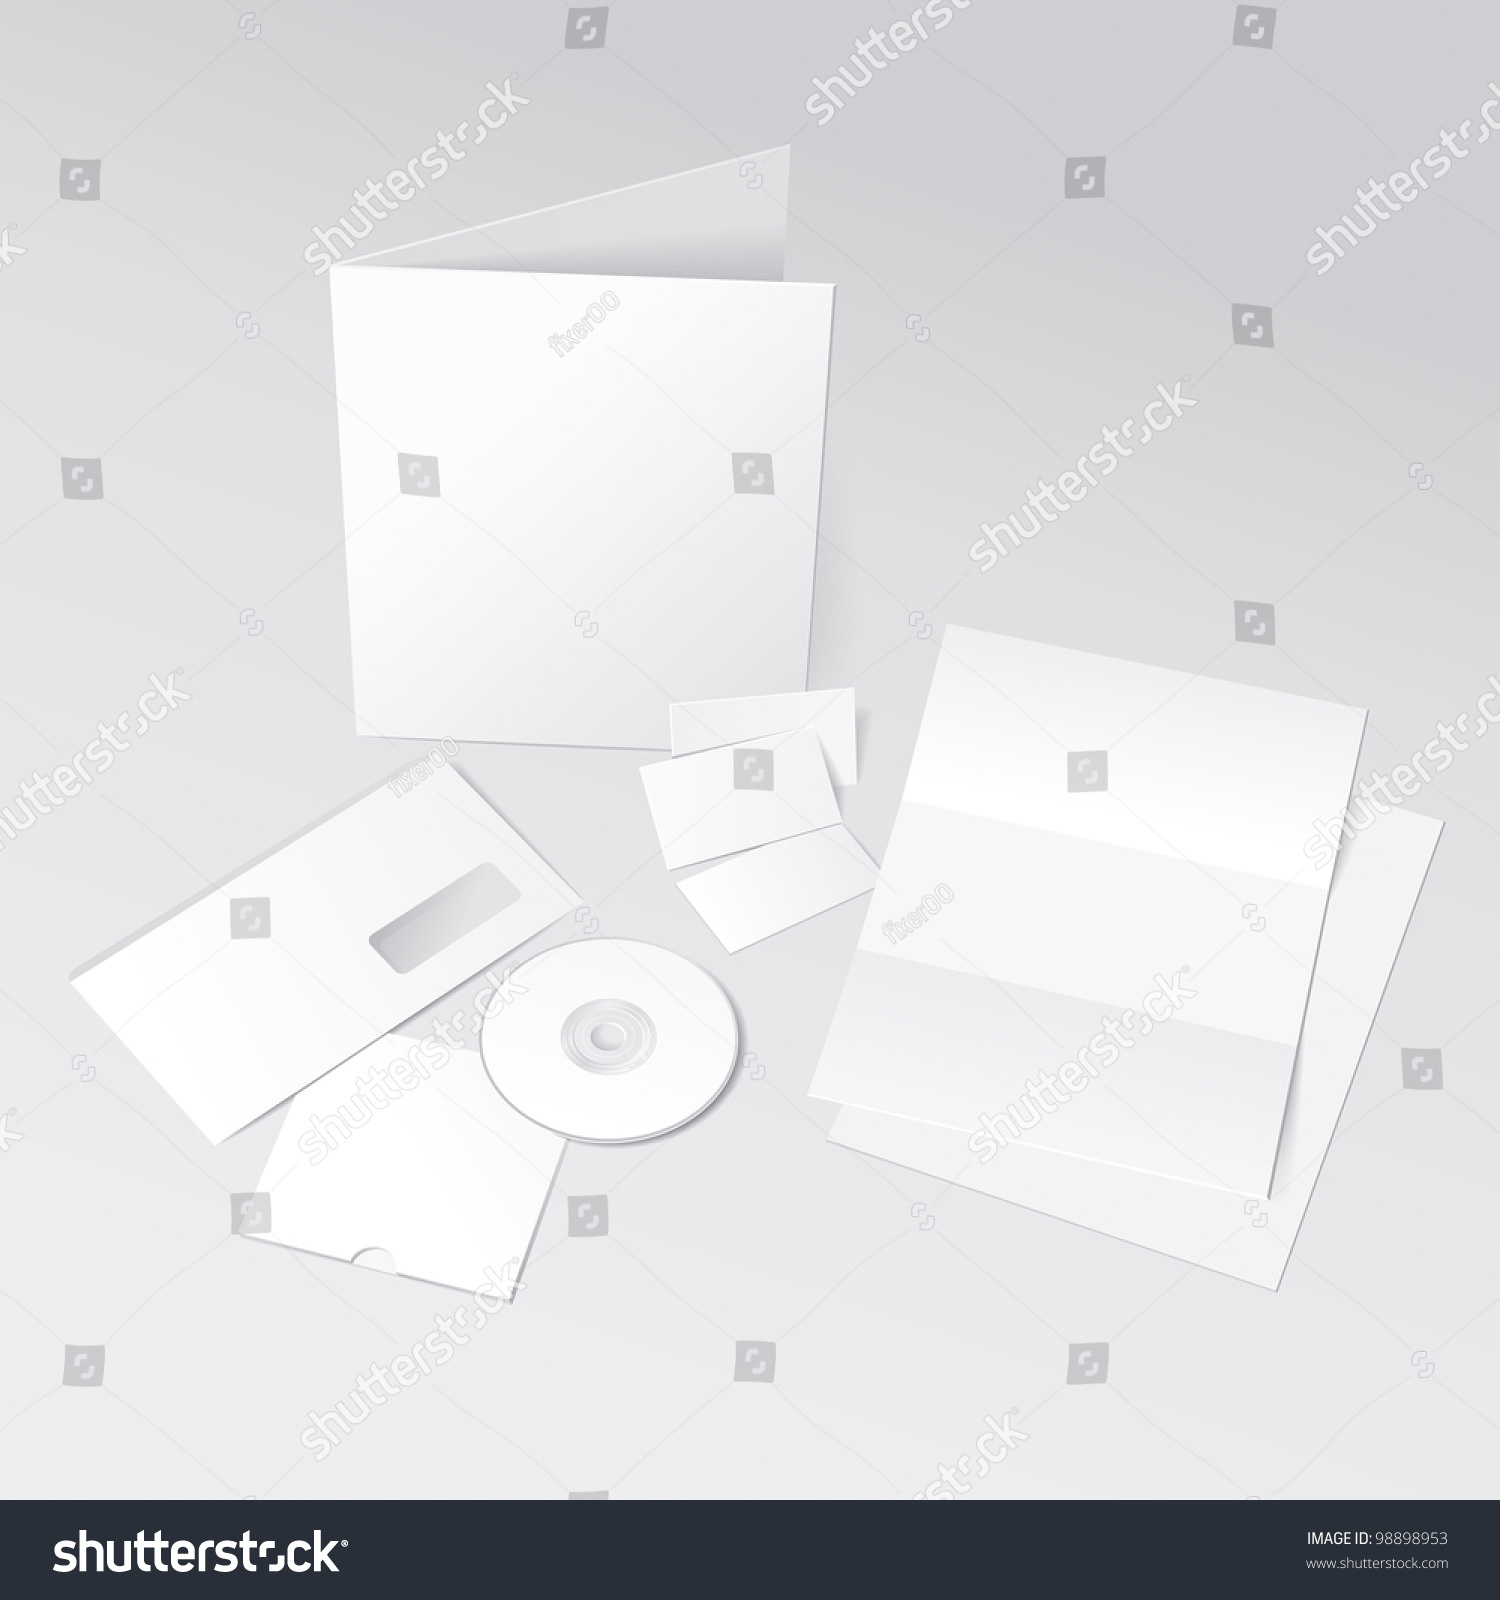 Blank business card size cd choice image card design and card template blank business card cd choice image card design and card template business card blank cd images reheart Images